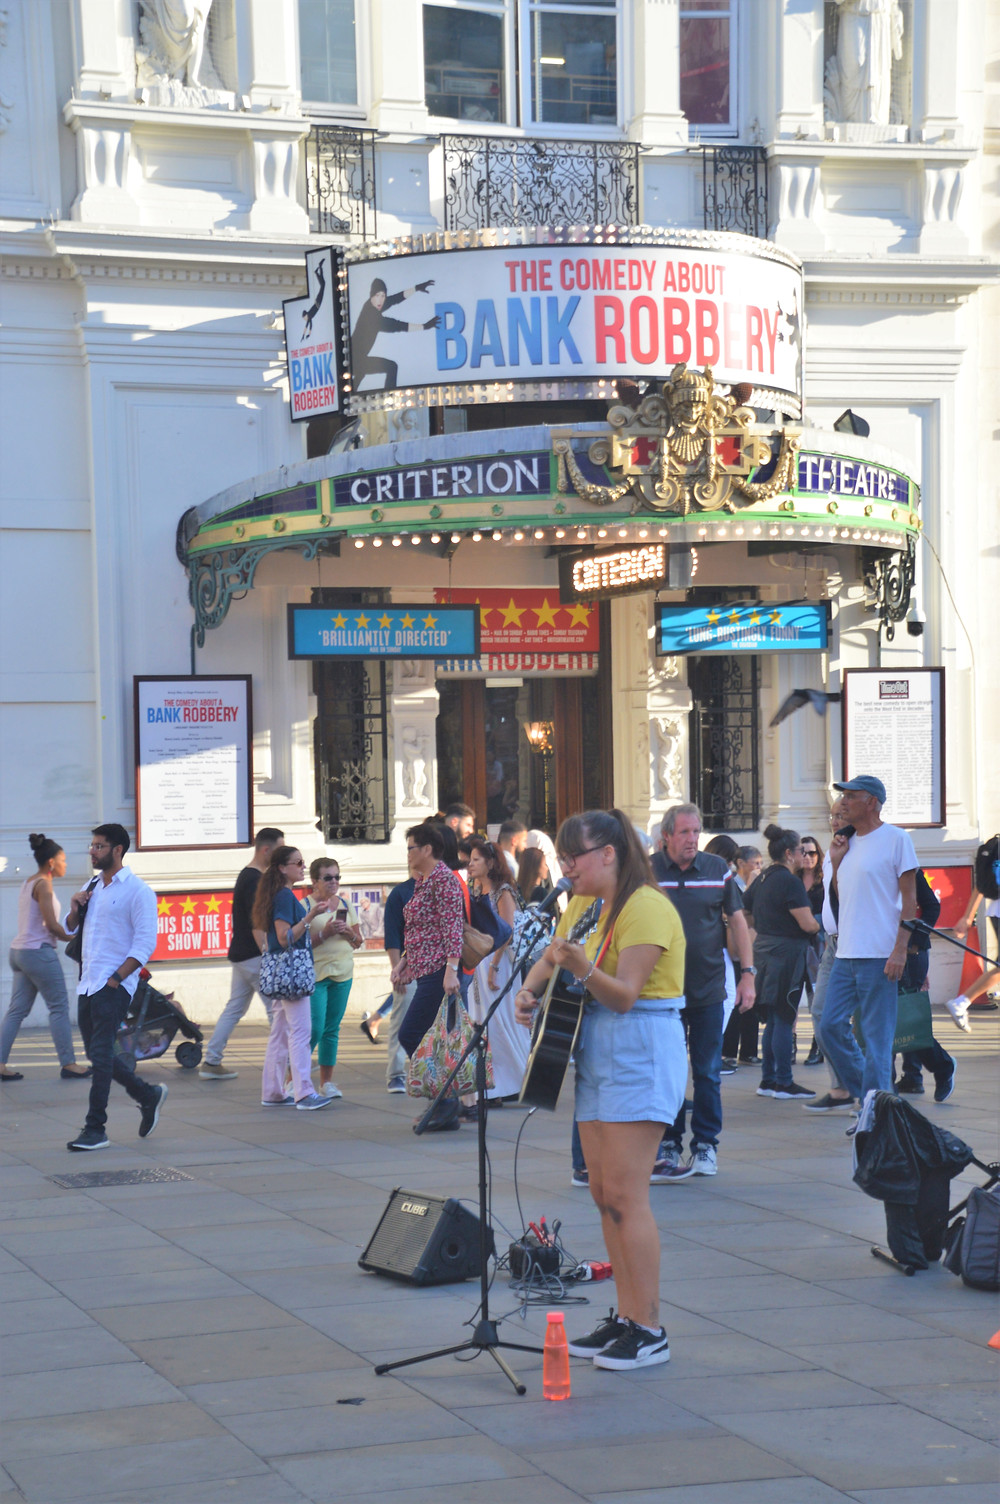 Theatre marquee for 'The Comedy About a Bank Robbery' play in London's Piccadilly Square